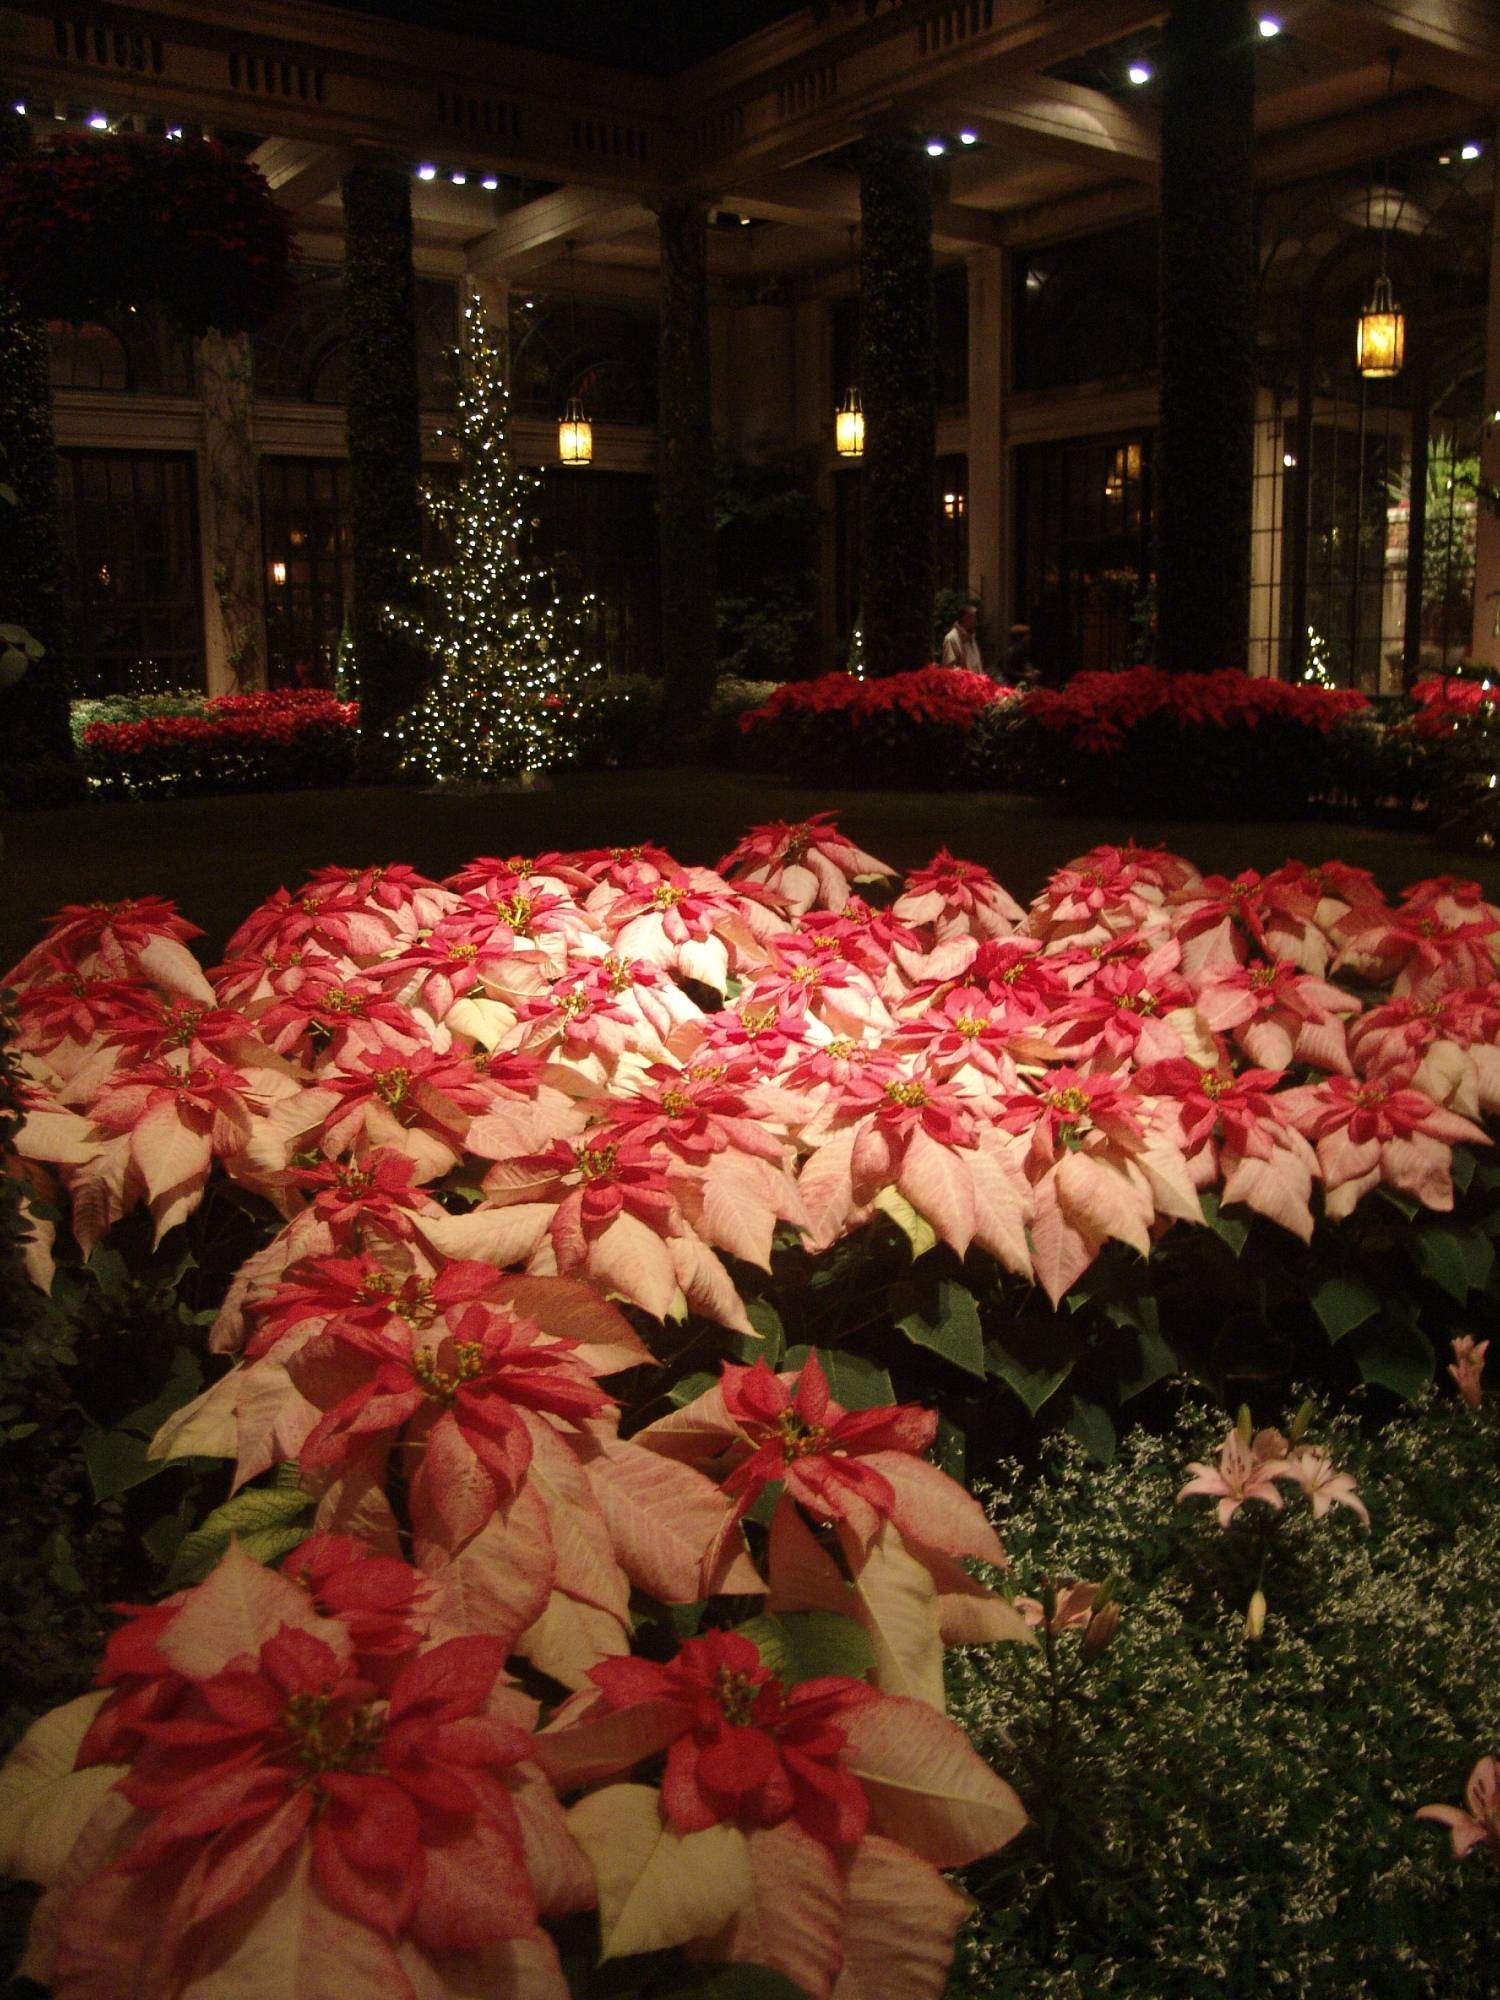 Longwood Gardens - Christmas display photo